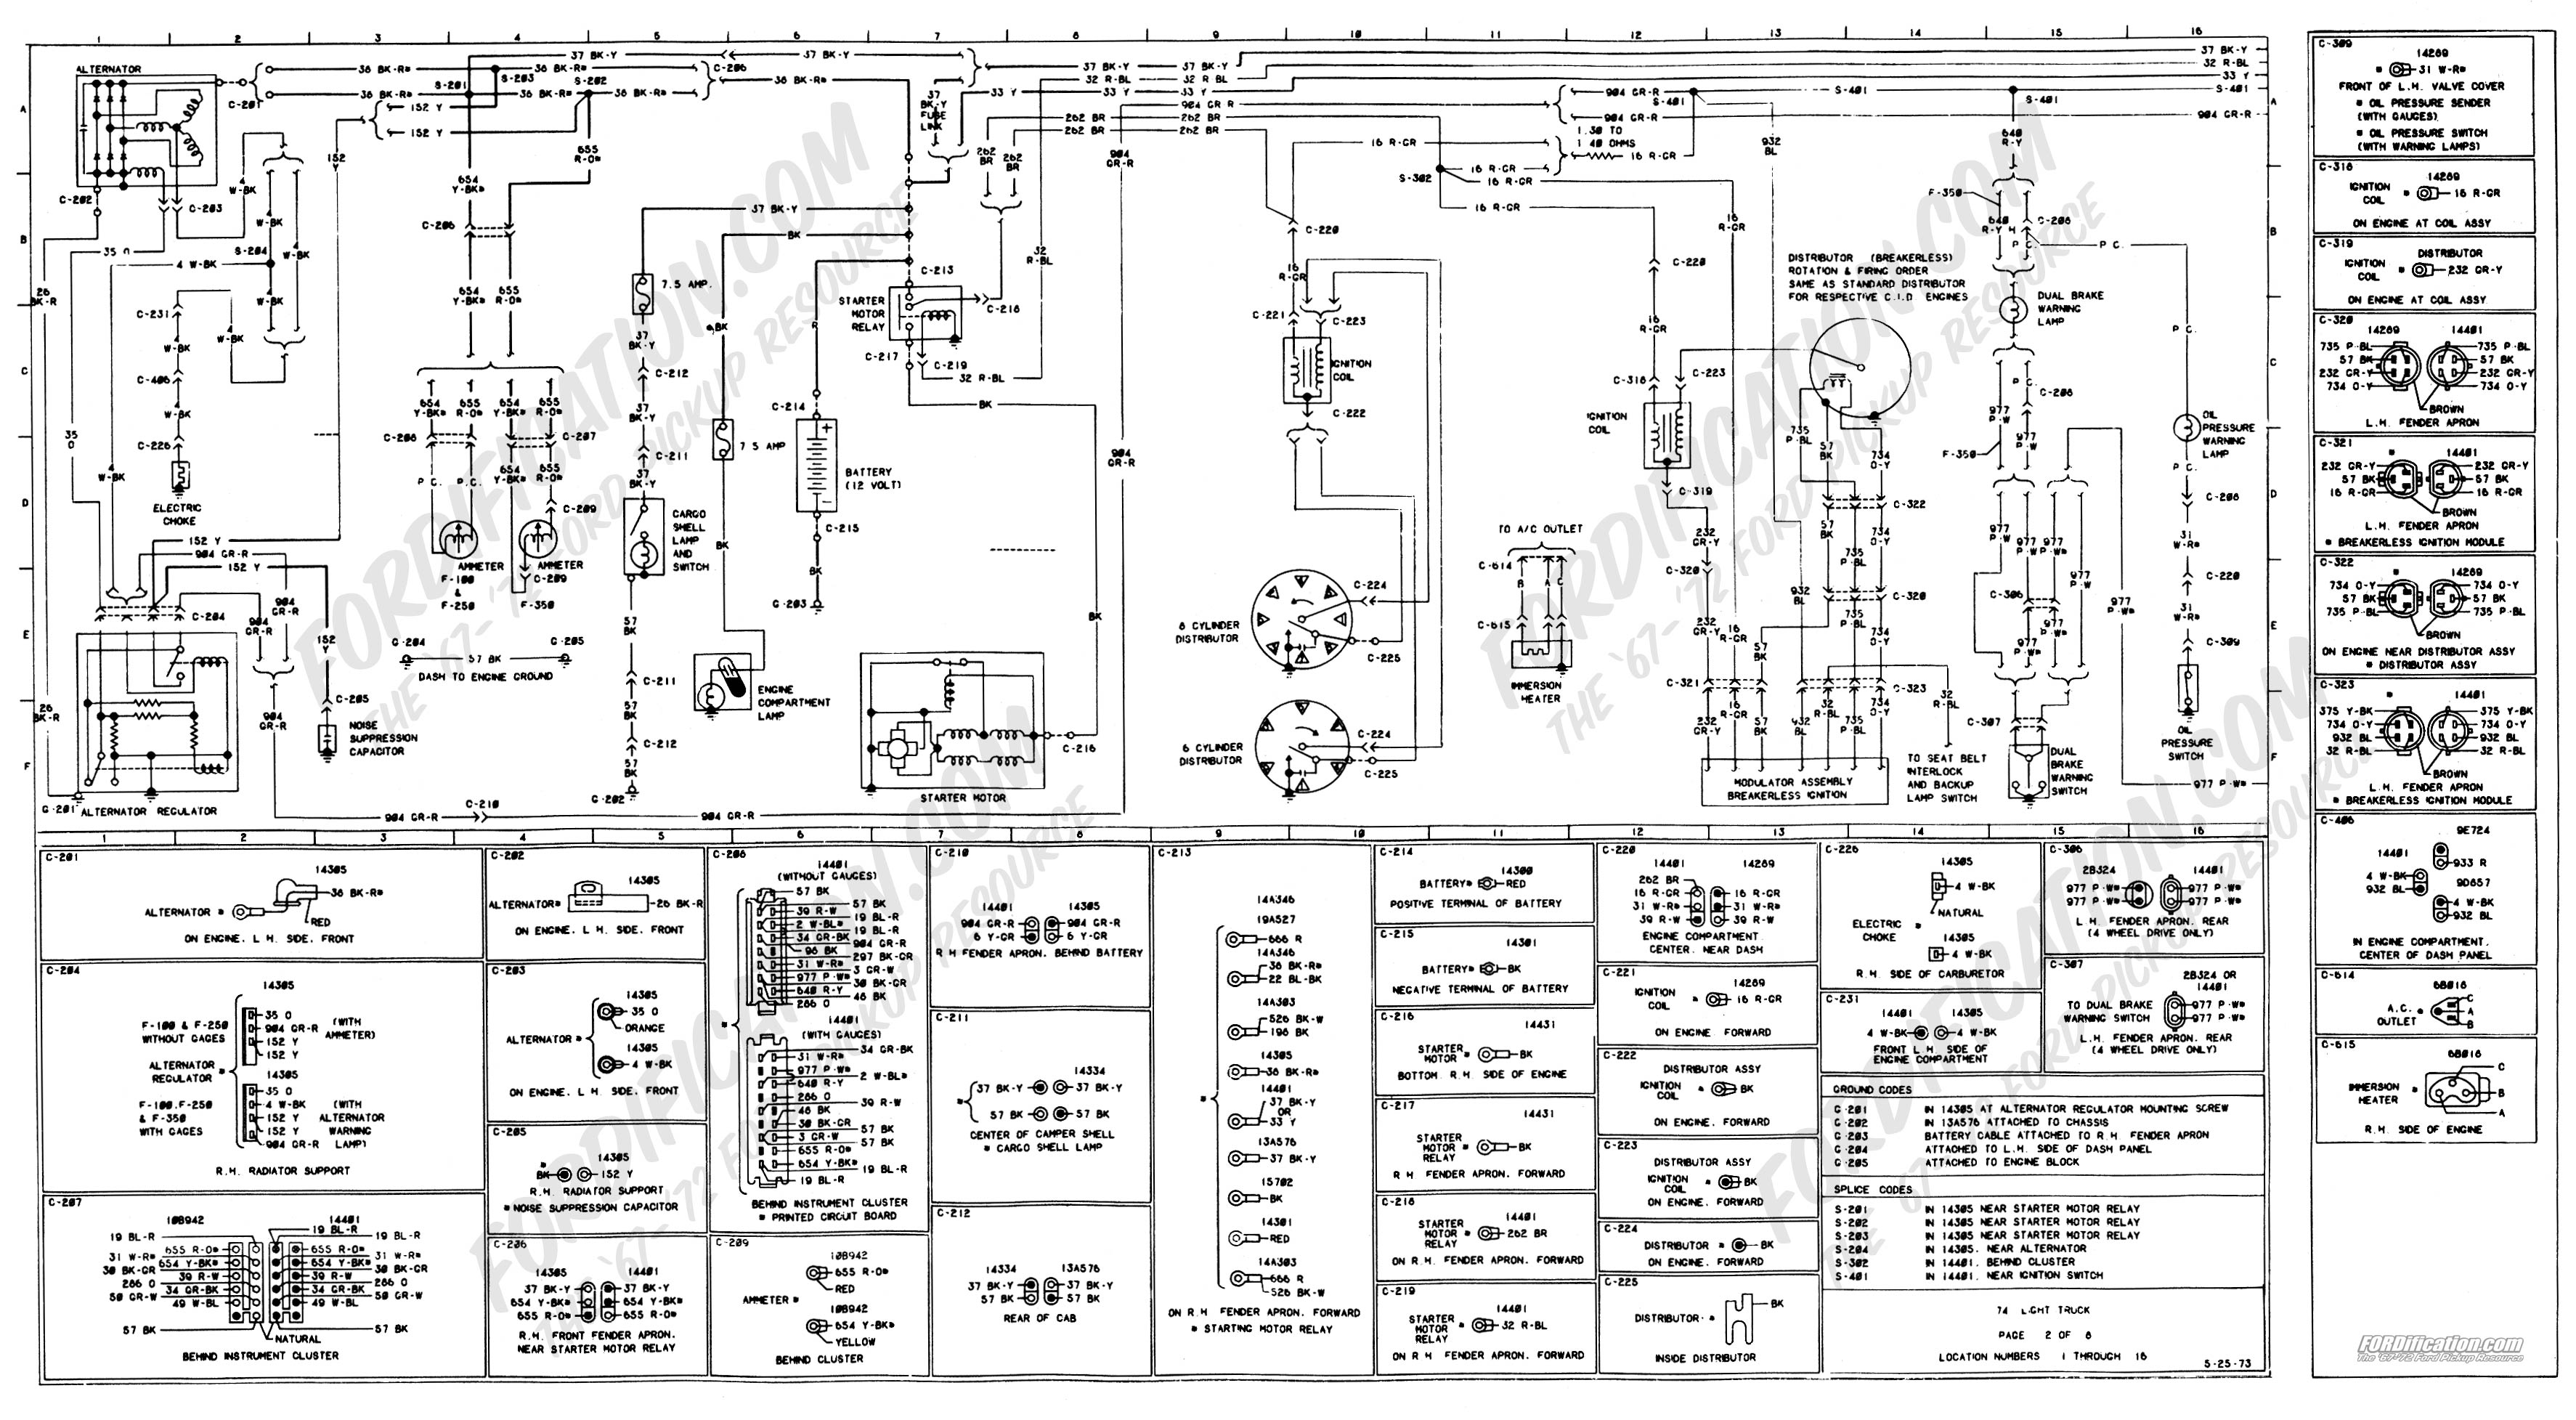 ford n wiring schematic wiring diagram and schematic design ford tractors 9n and 2n wiring harness